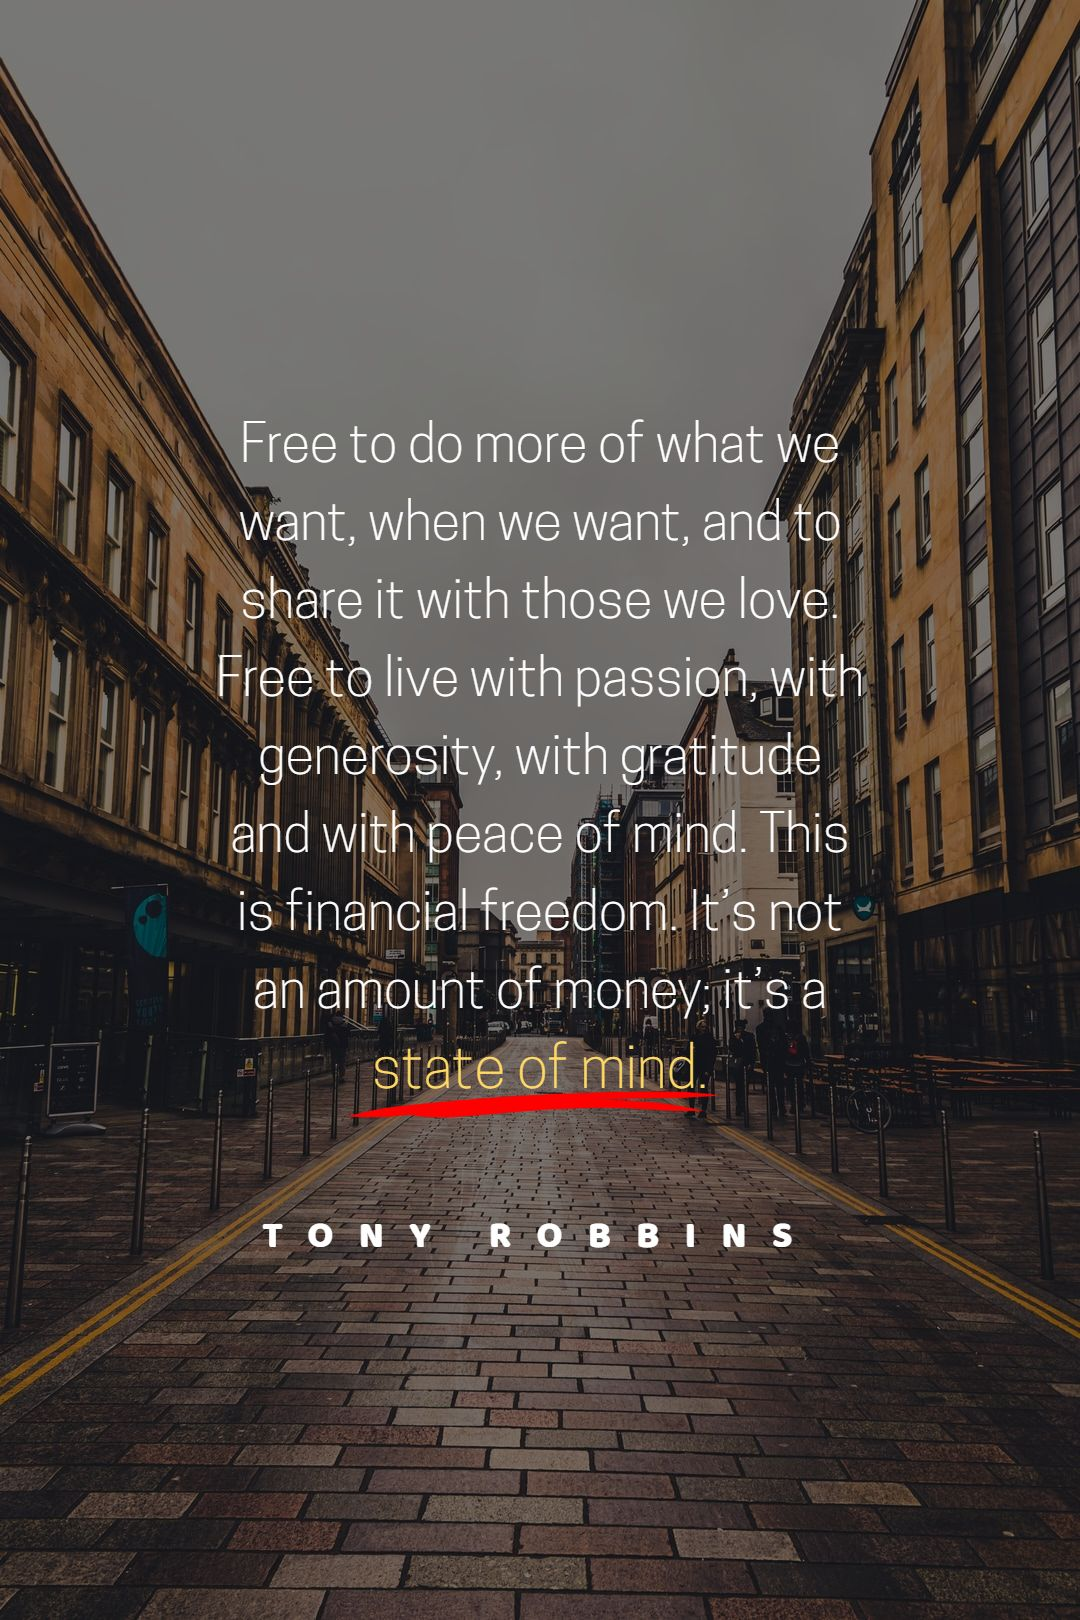 Quotes image of Free to do more of what we want, when we want, and to share it with those we love. Free to live with passion, with generosity, with gratitude and with peace of mind. This is financial freedom. It's not an amount of money; it's a state of mind.